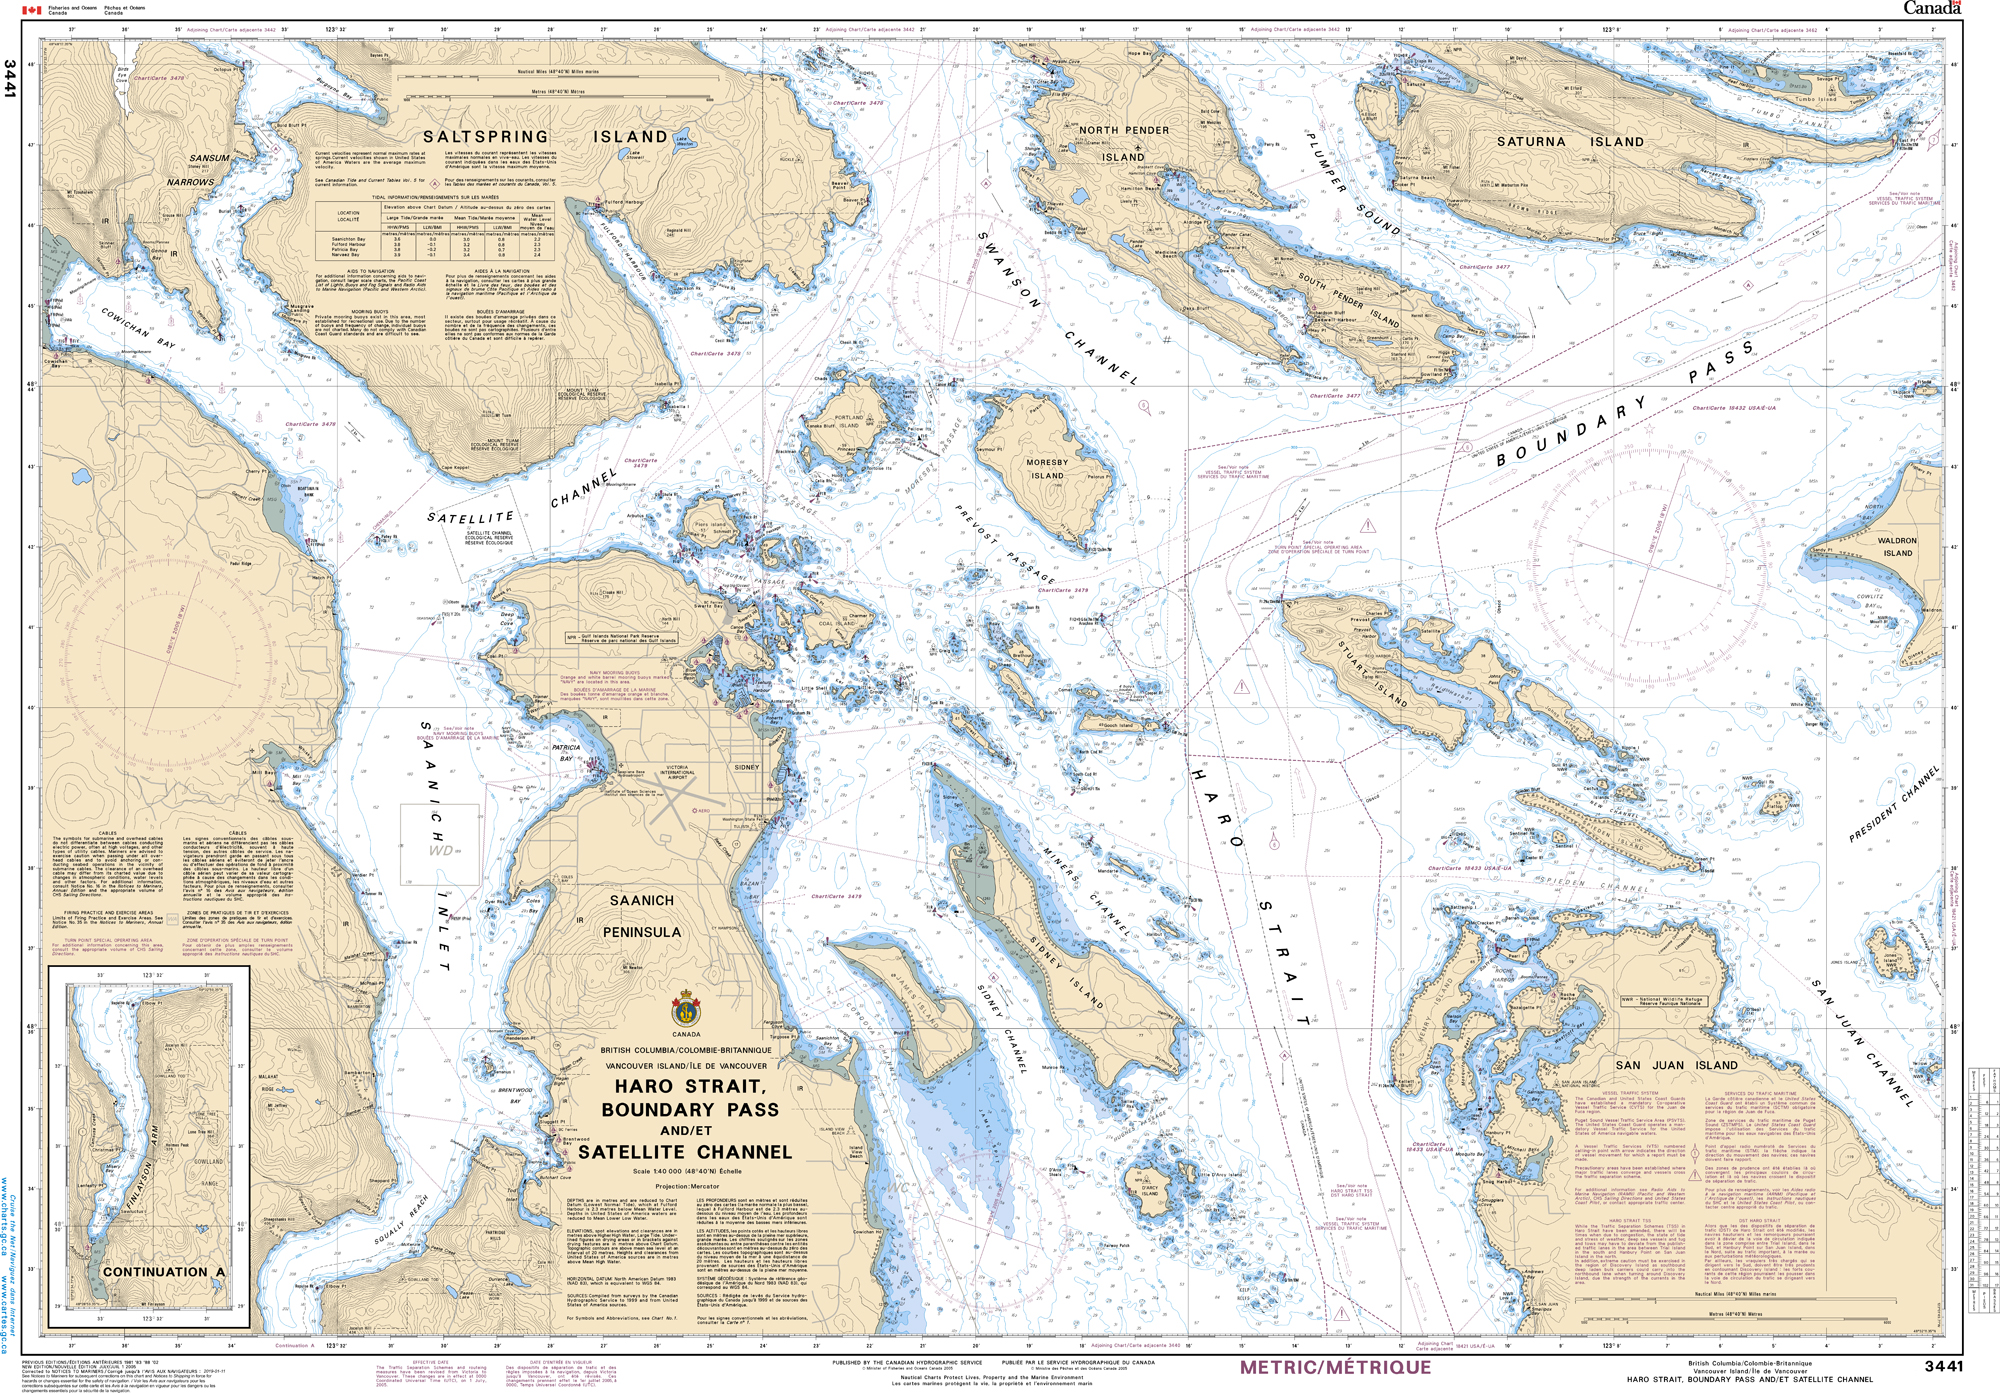 Pacific Region, CHS Chart 3441: Haro Strait, Boundary Pass and/et Satellite Channel